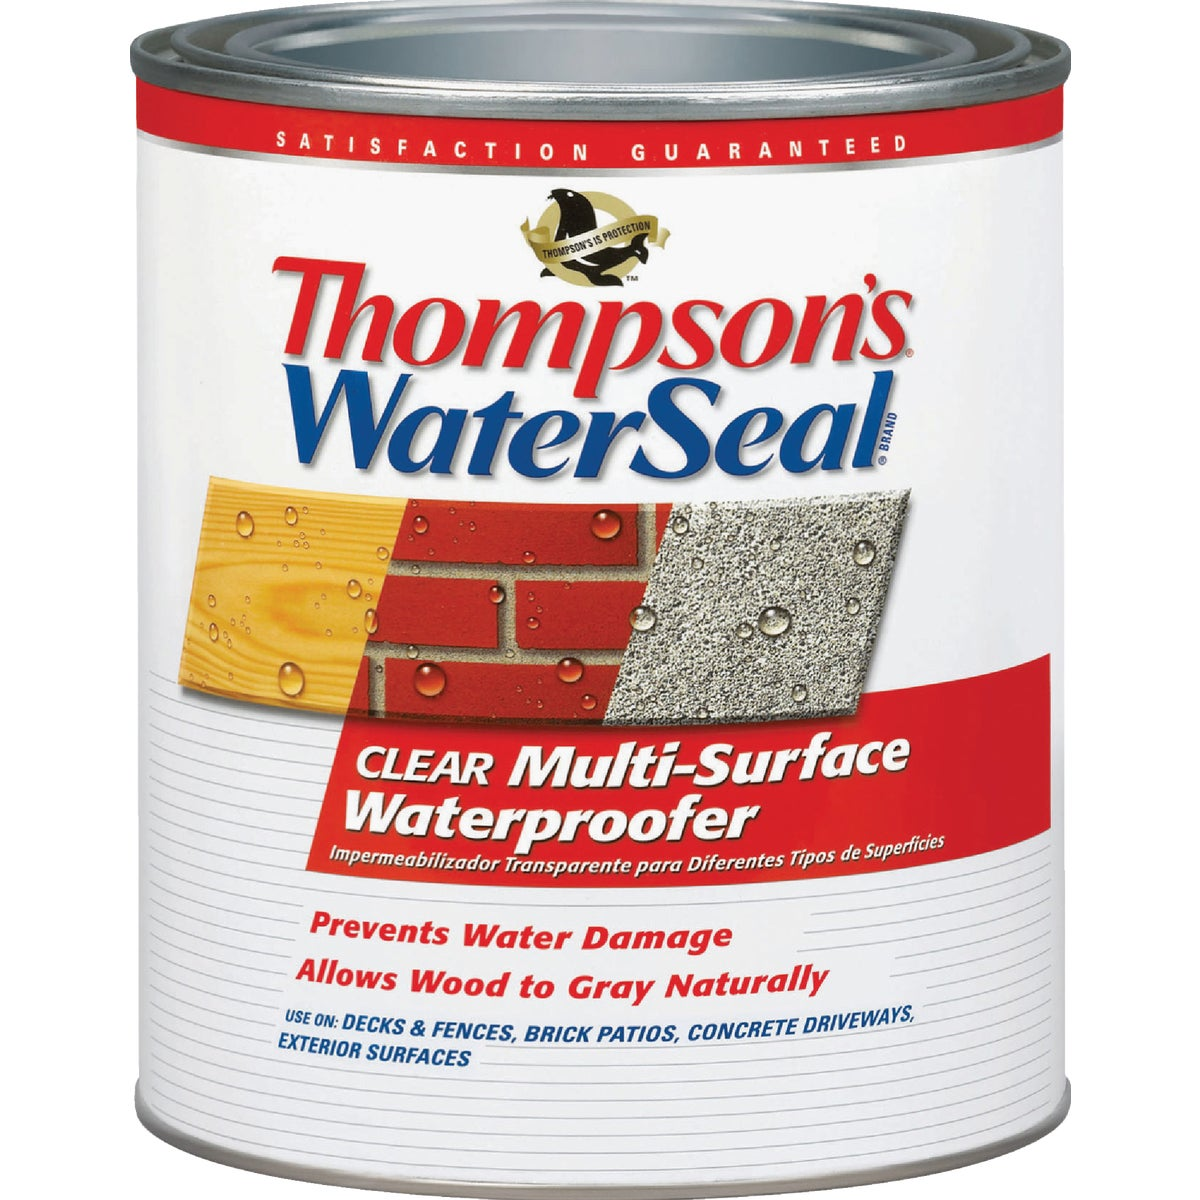 CLR MULTI-SURFACE SEALER - TH.024104-14 by Thompsons